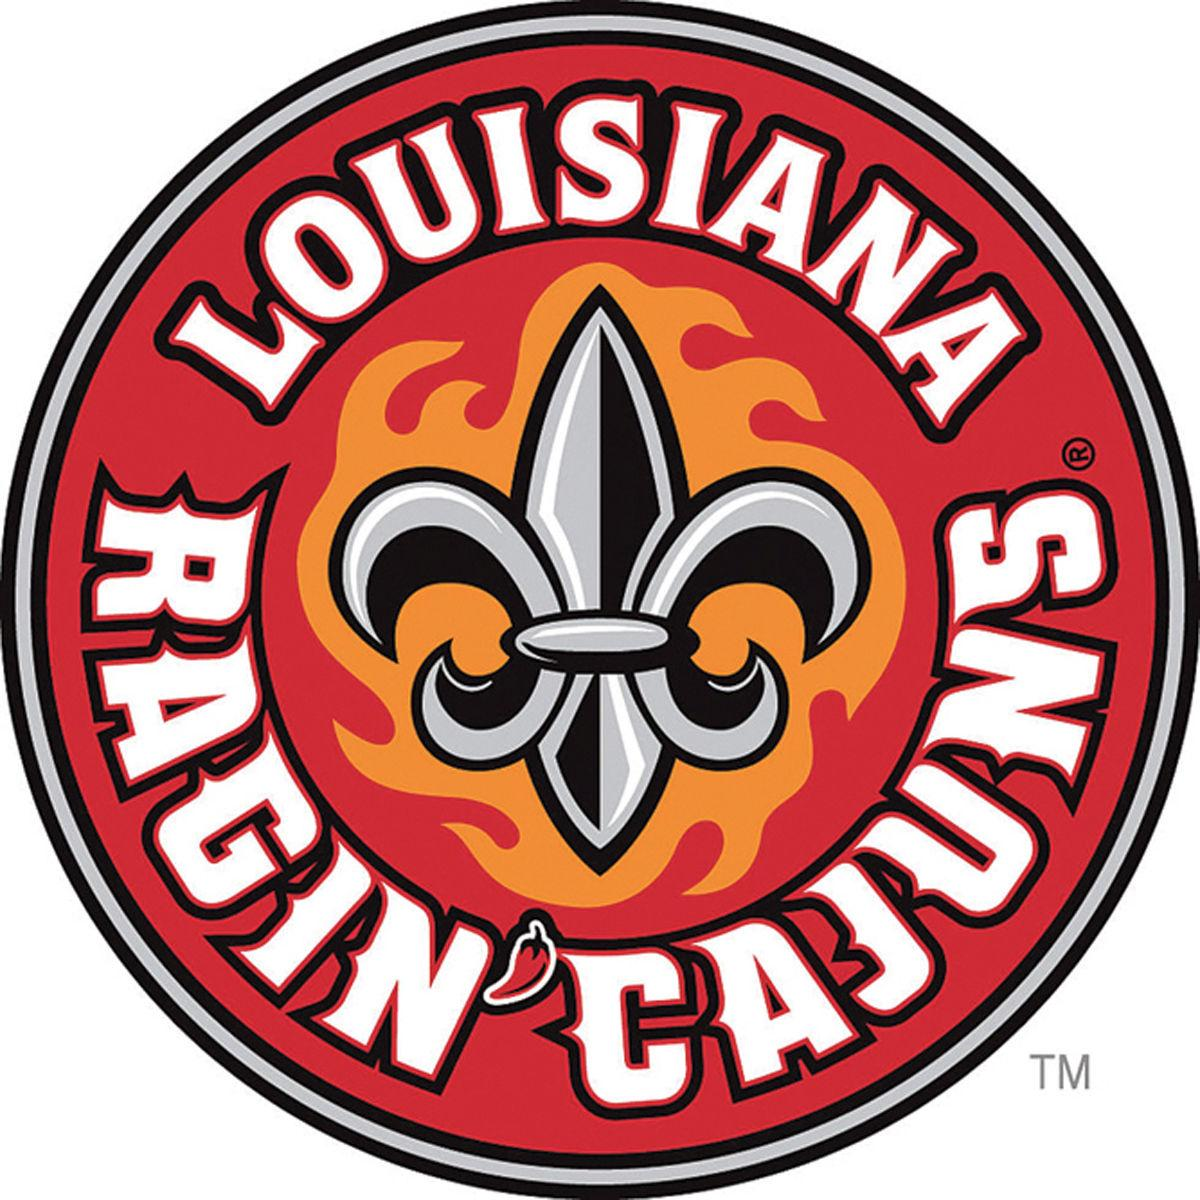 Fan Day scheduled Aug. 11 at Cajundome